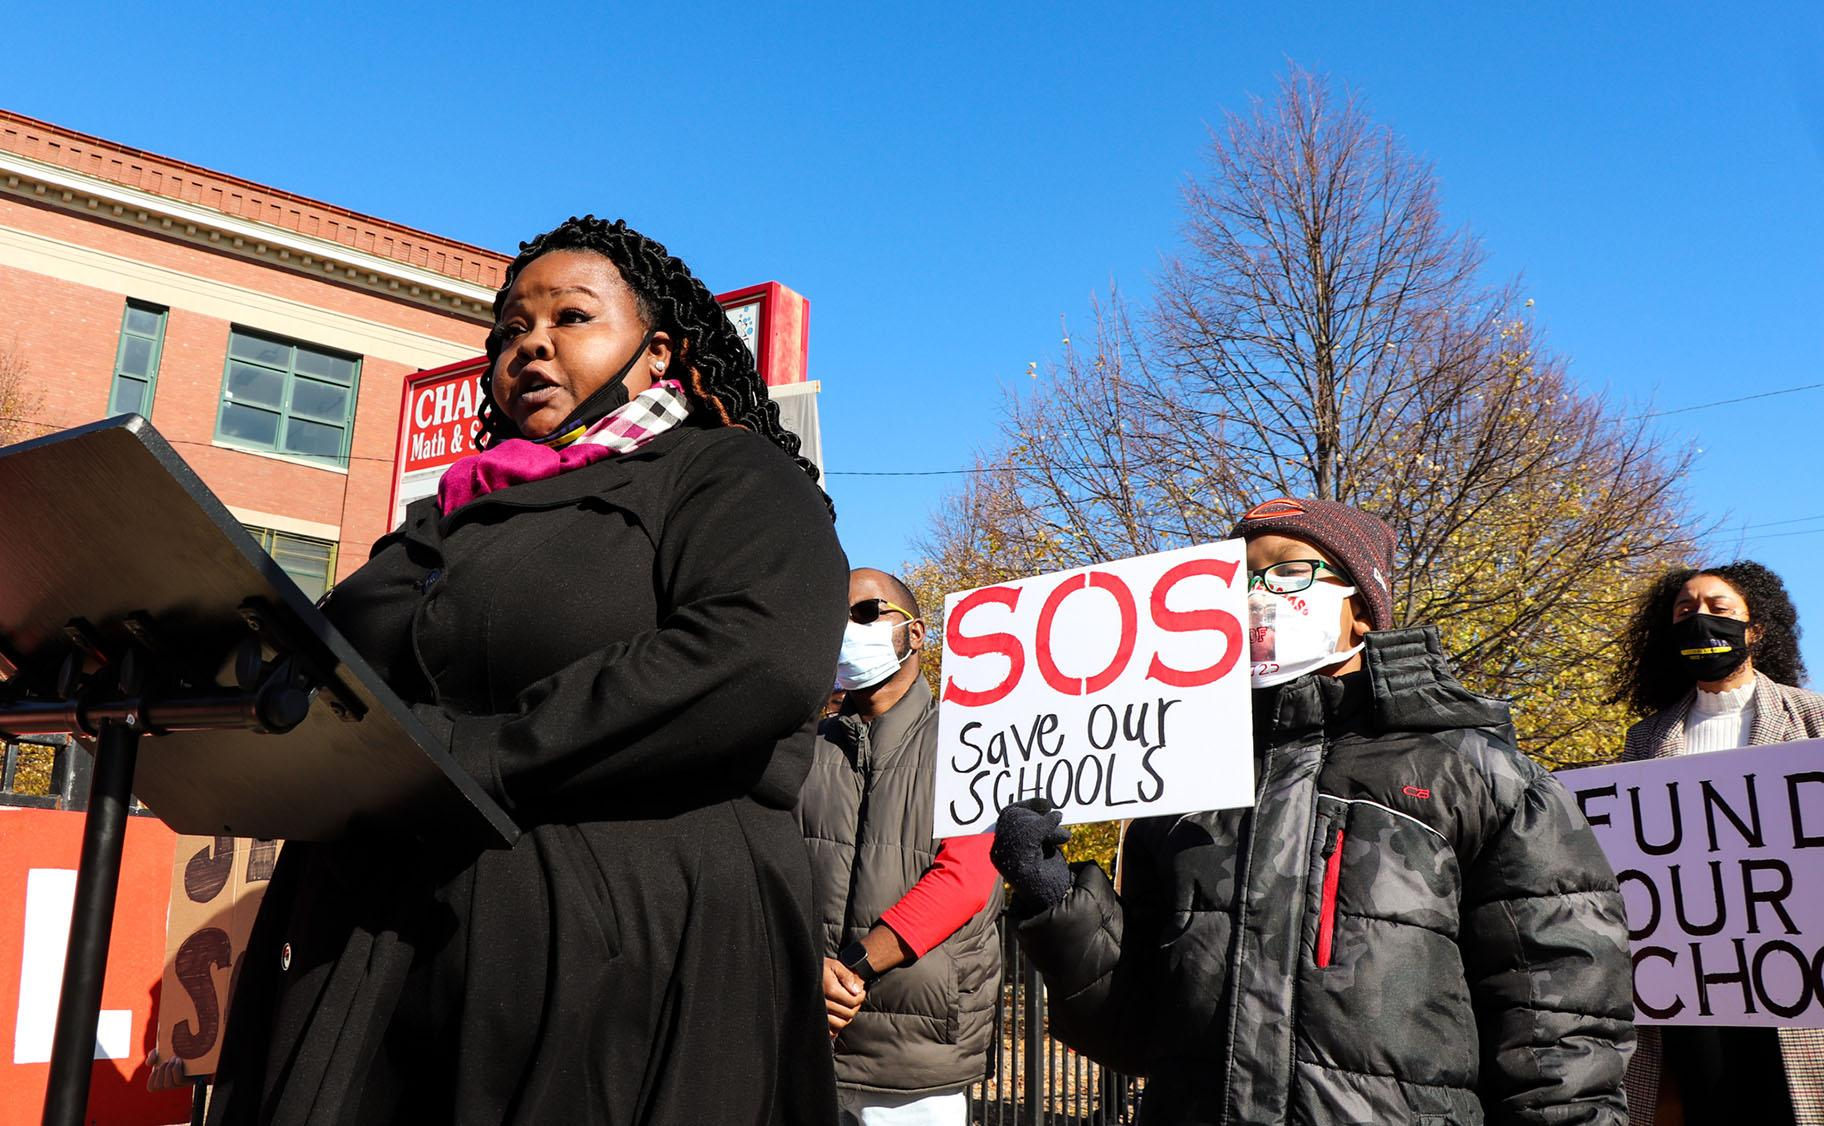 State Rep. Lakesia Collins speaks on Saturday, Oct. 31, 2020. (Grace Del Vecchio / WTTW News)